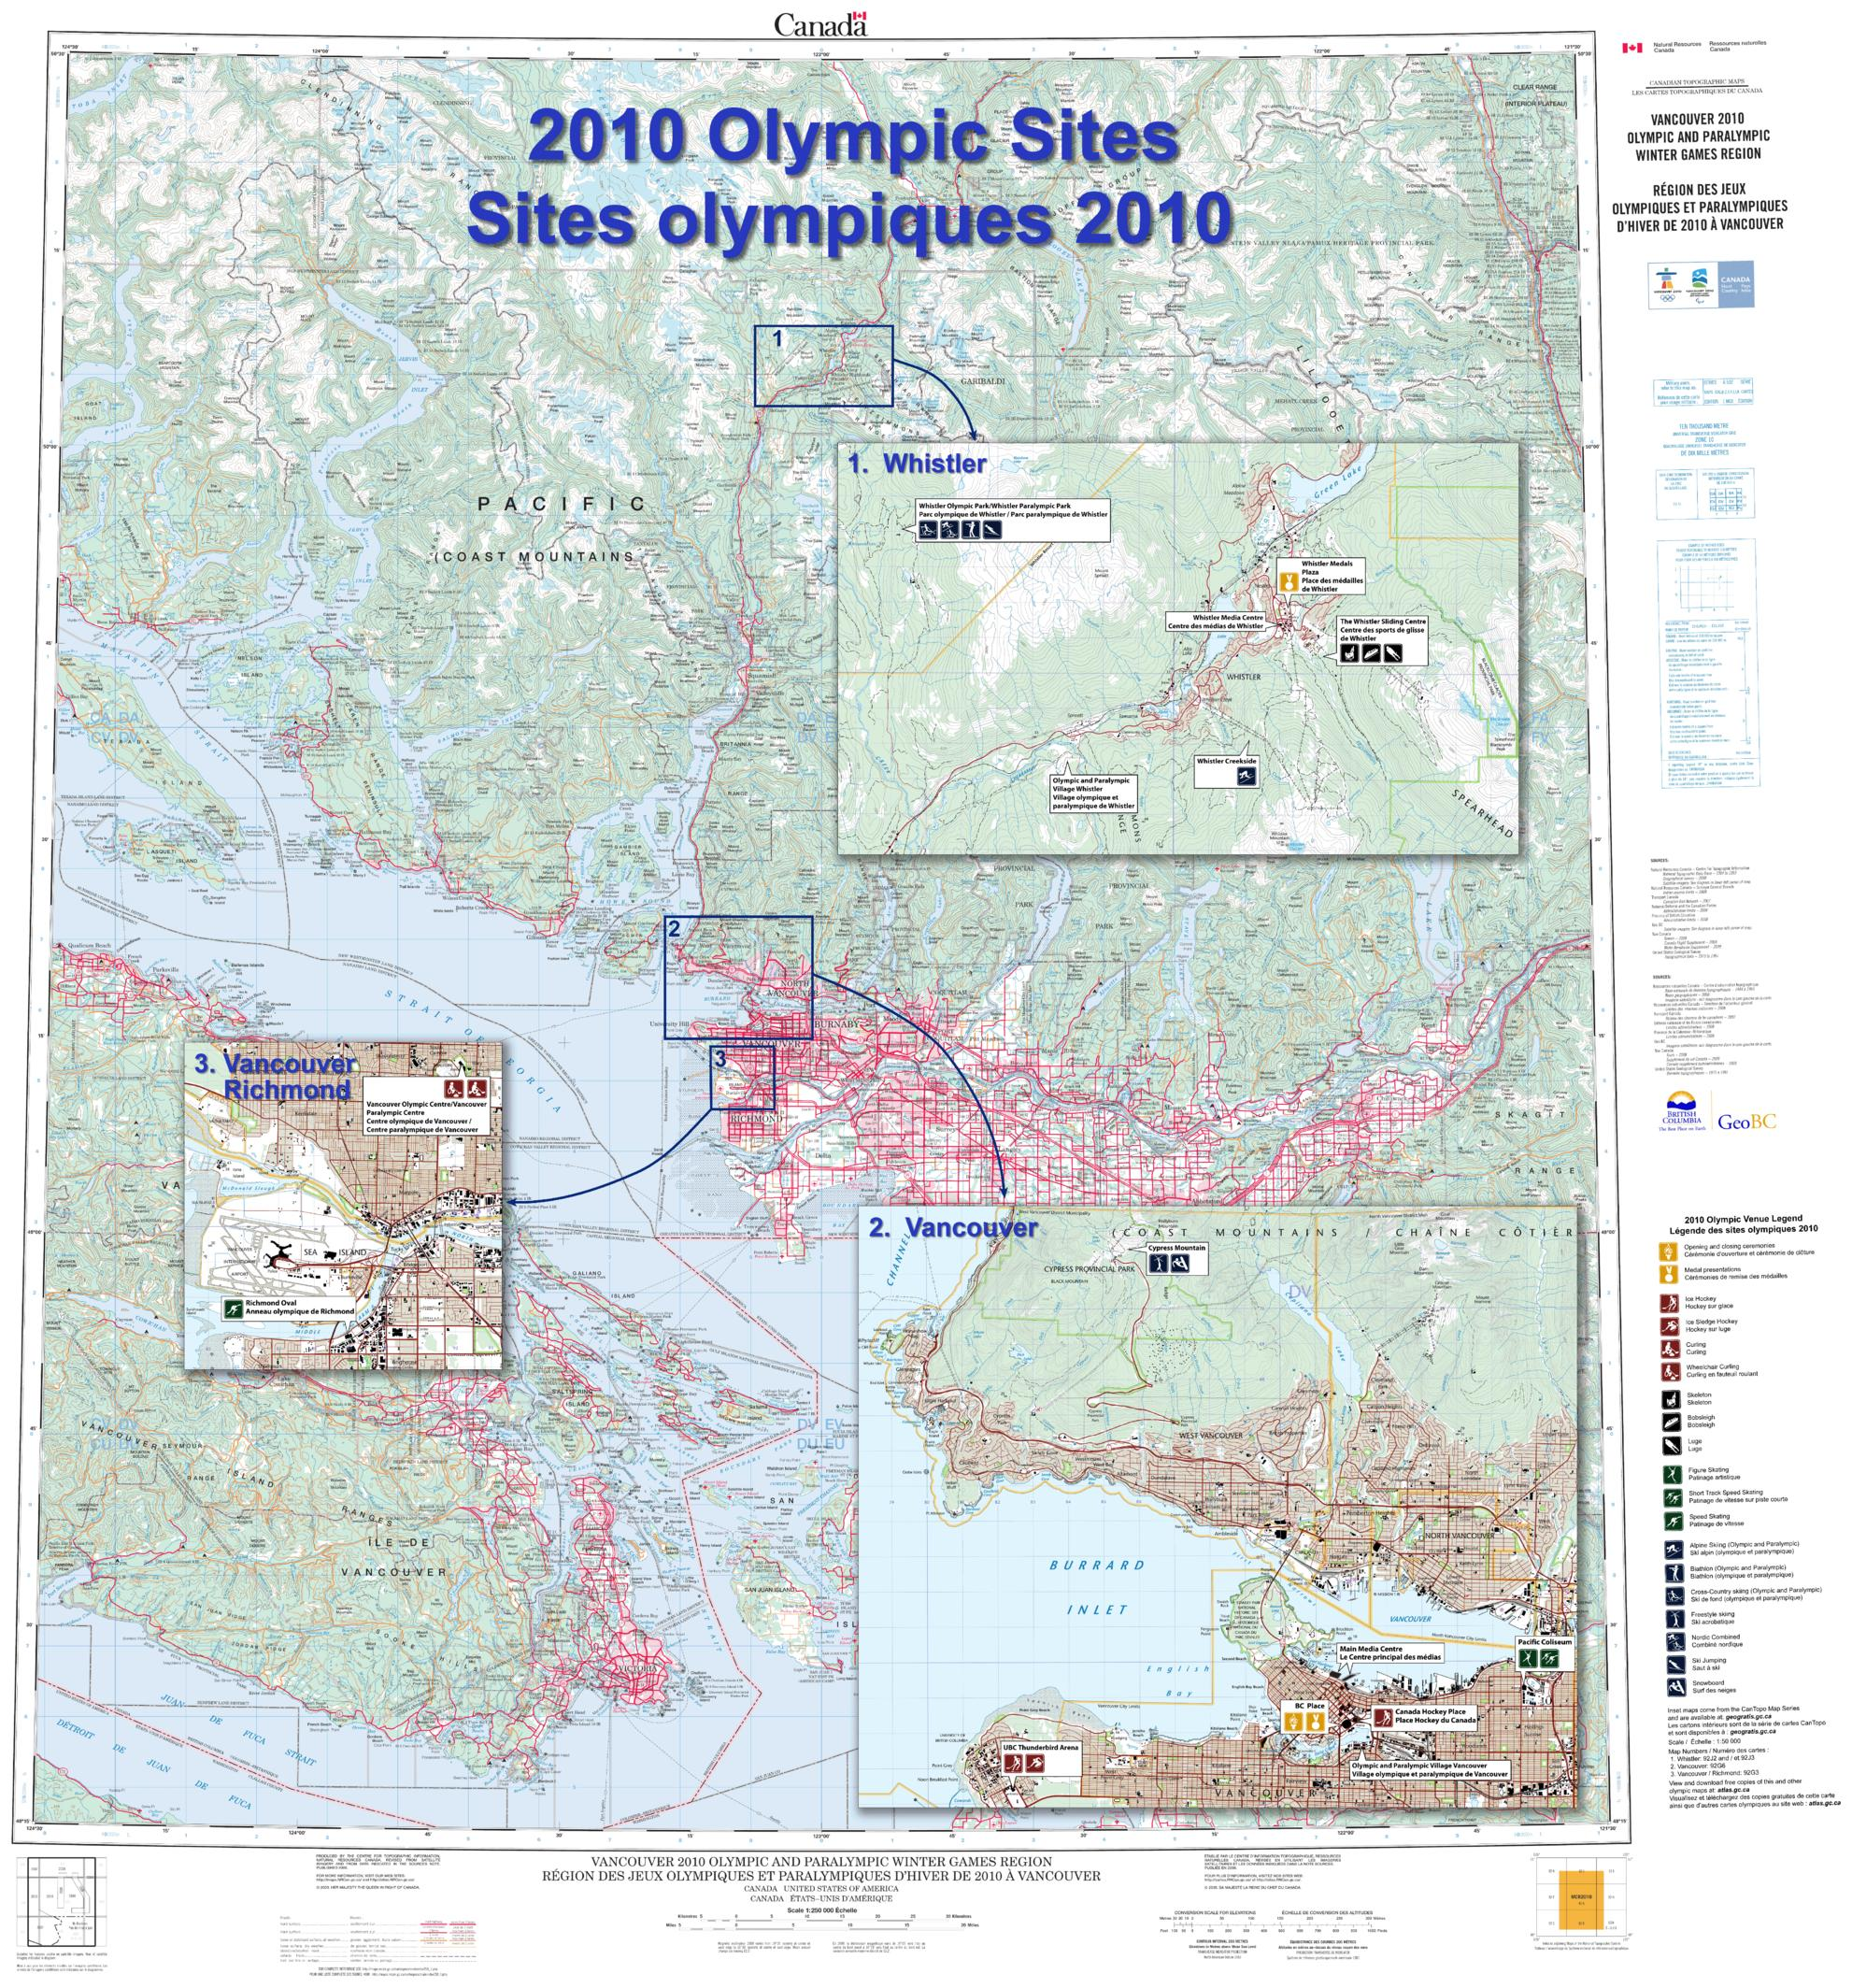 2010 Olympic sites / Sites olympiques 2010